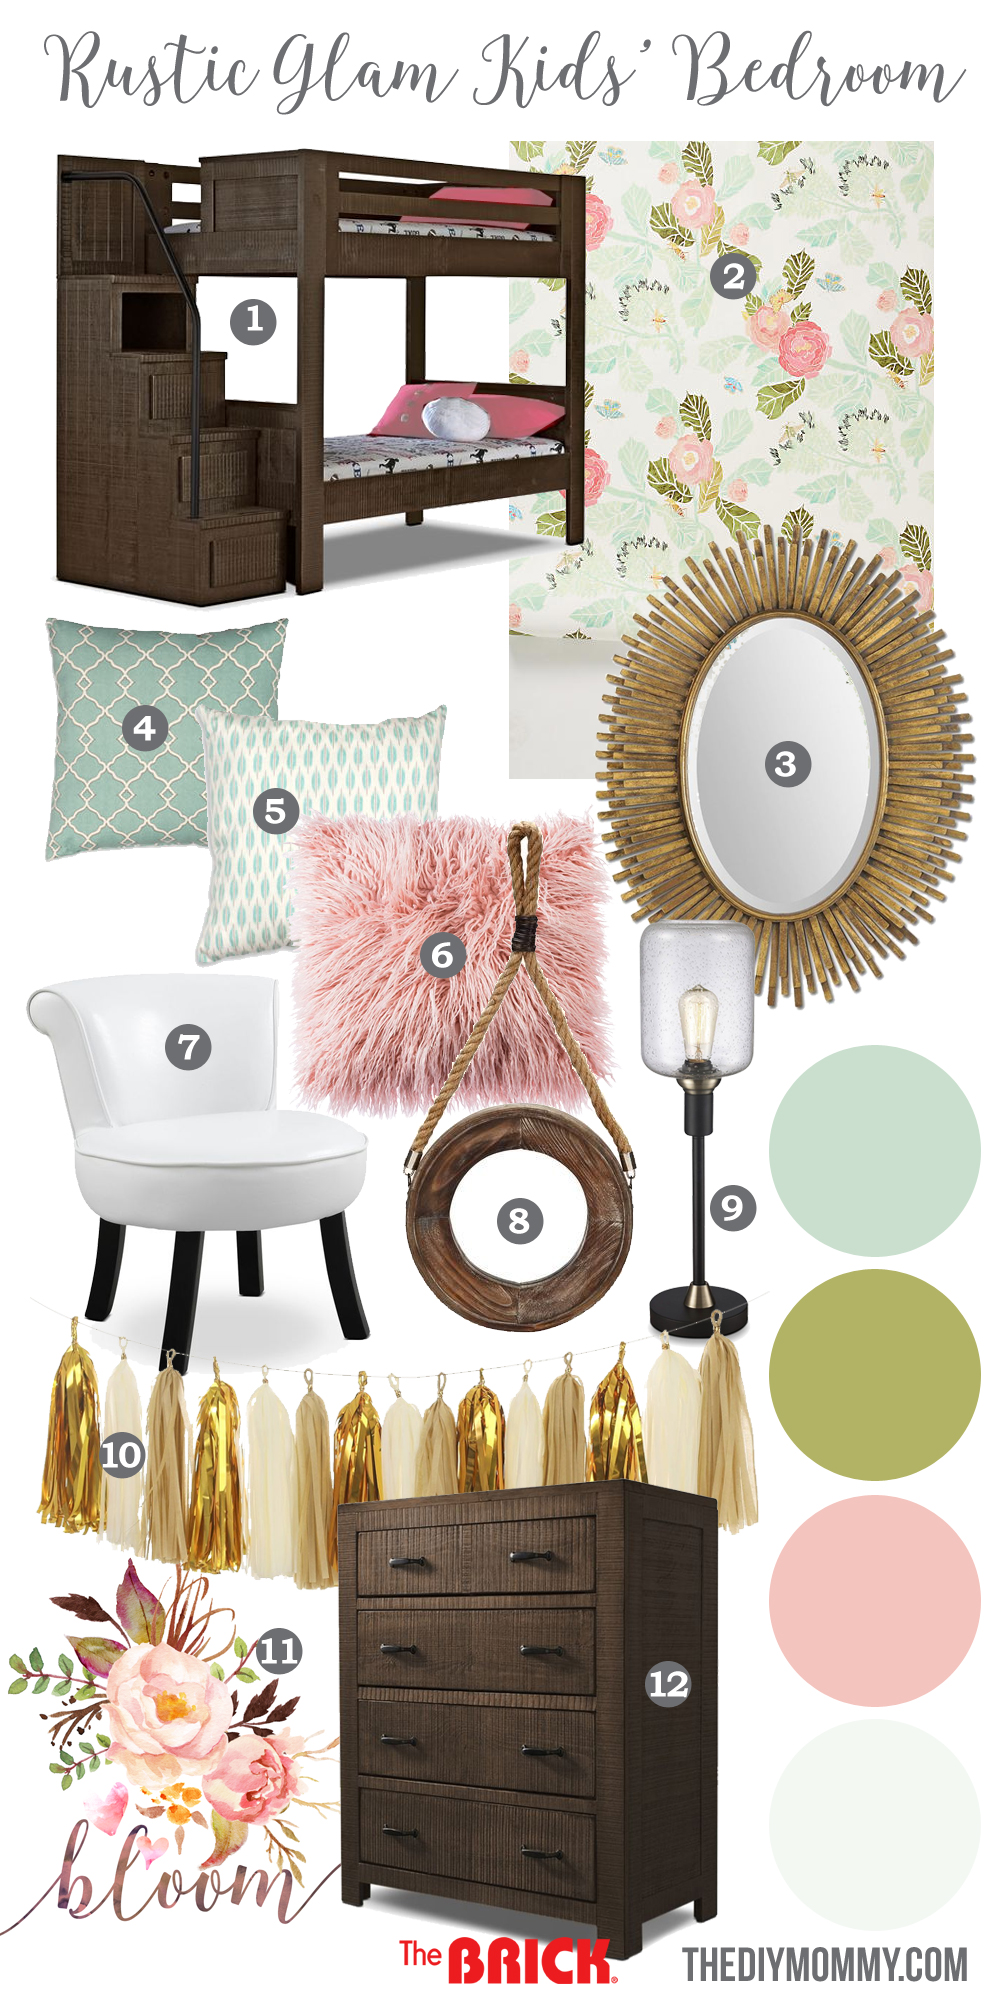 Rustic Glam S Bedroom Mood Board Featuring Gold Blush Pink Mint Green Aqua